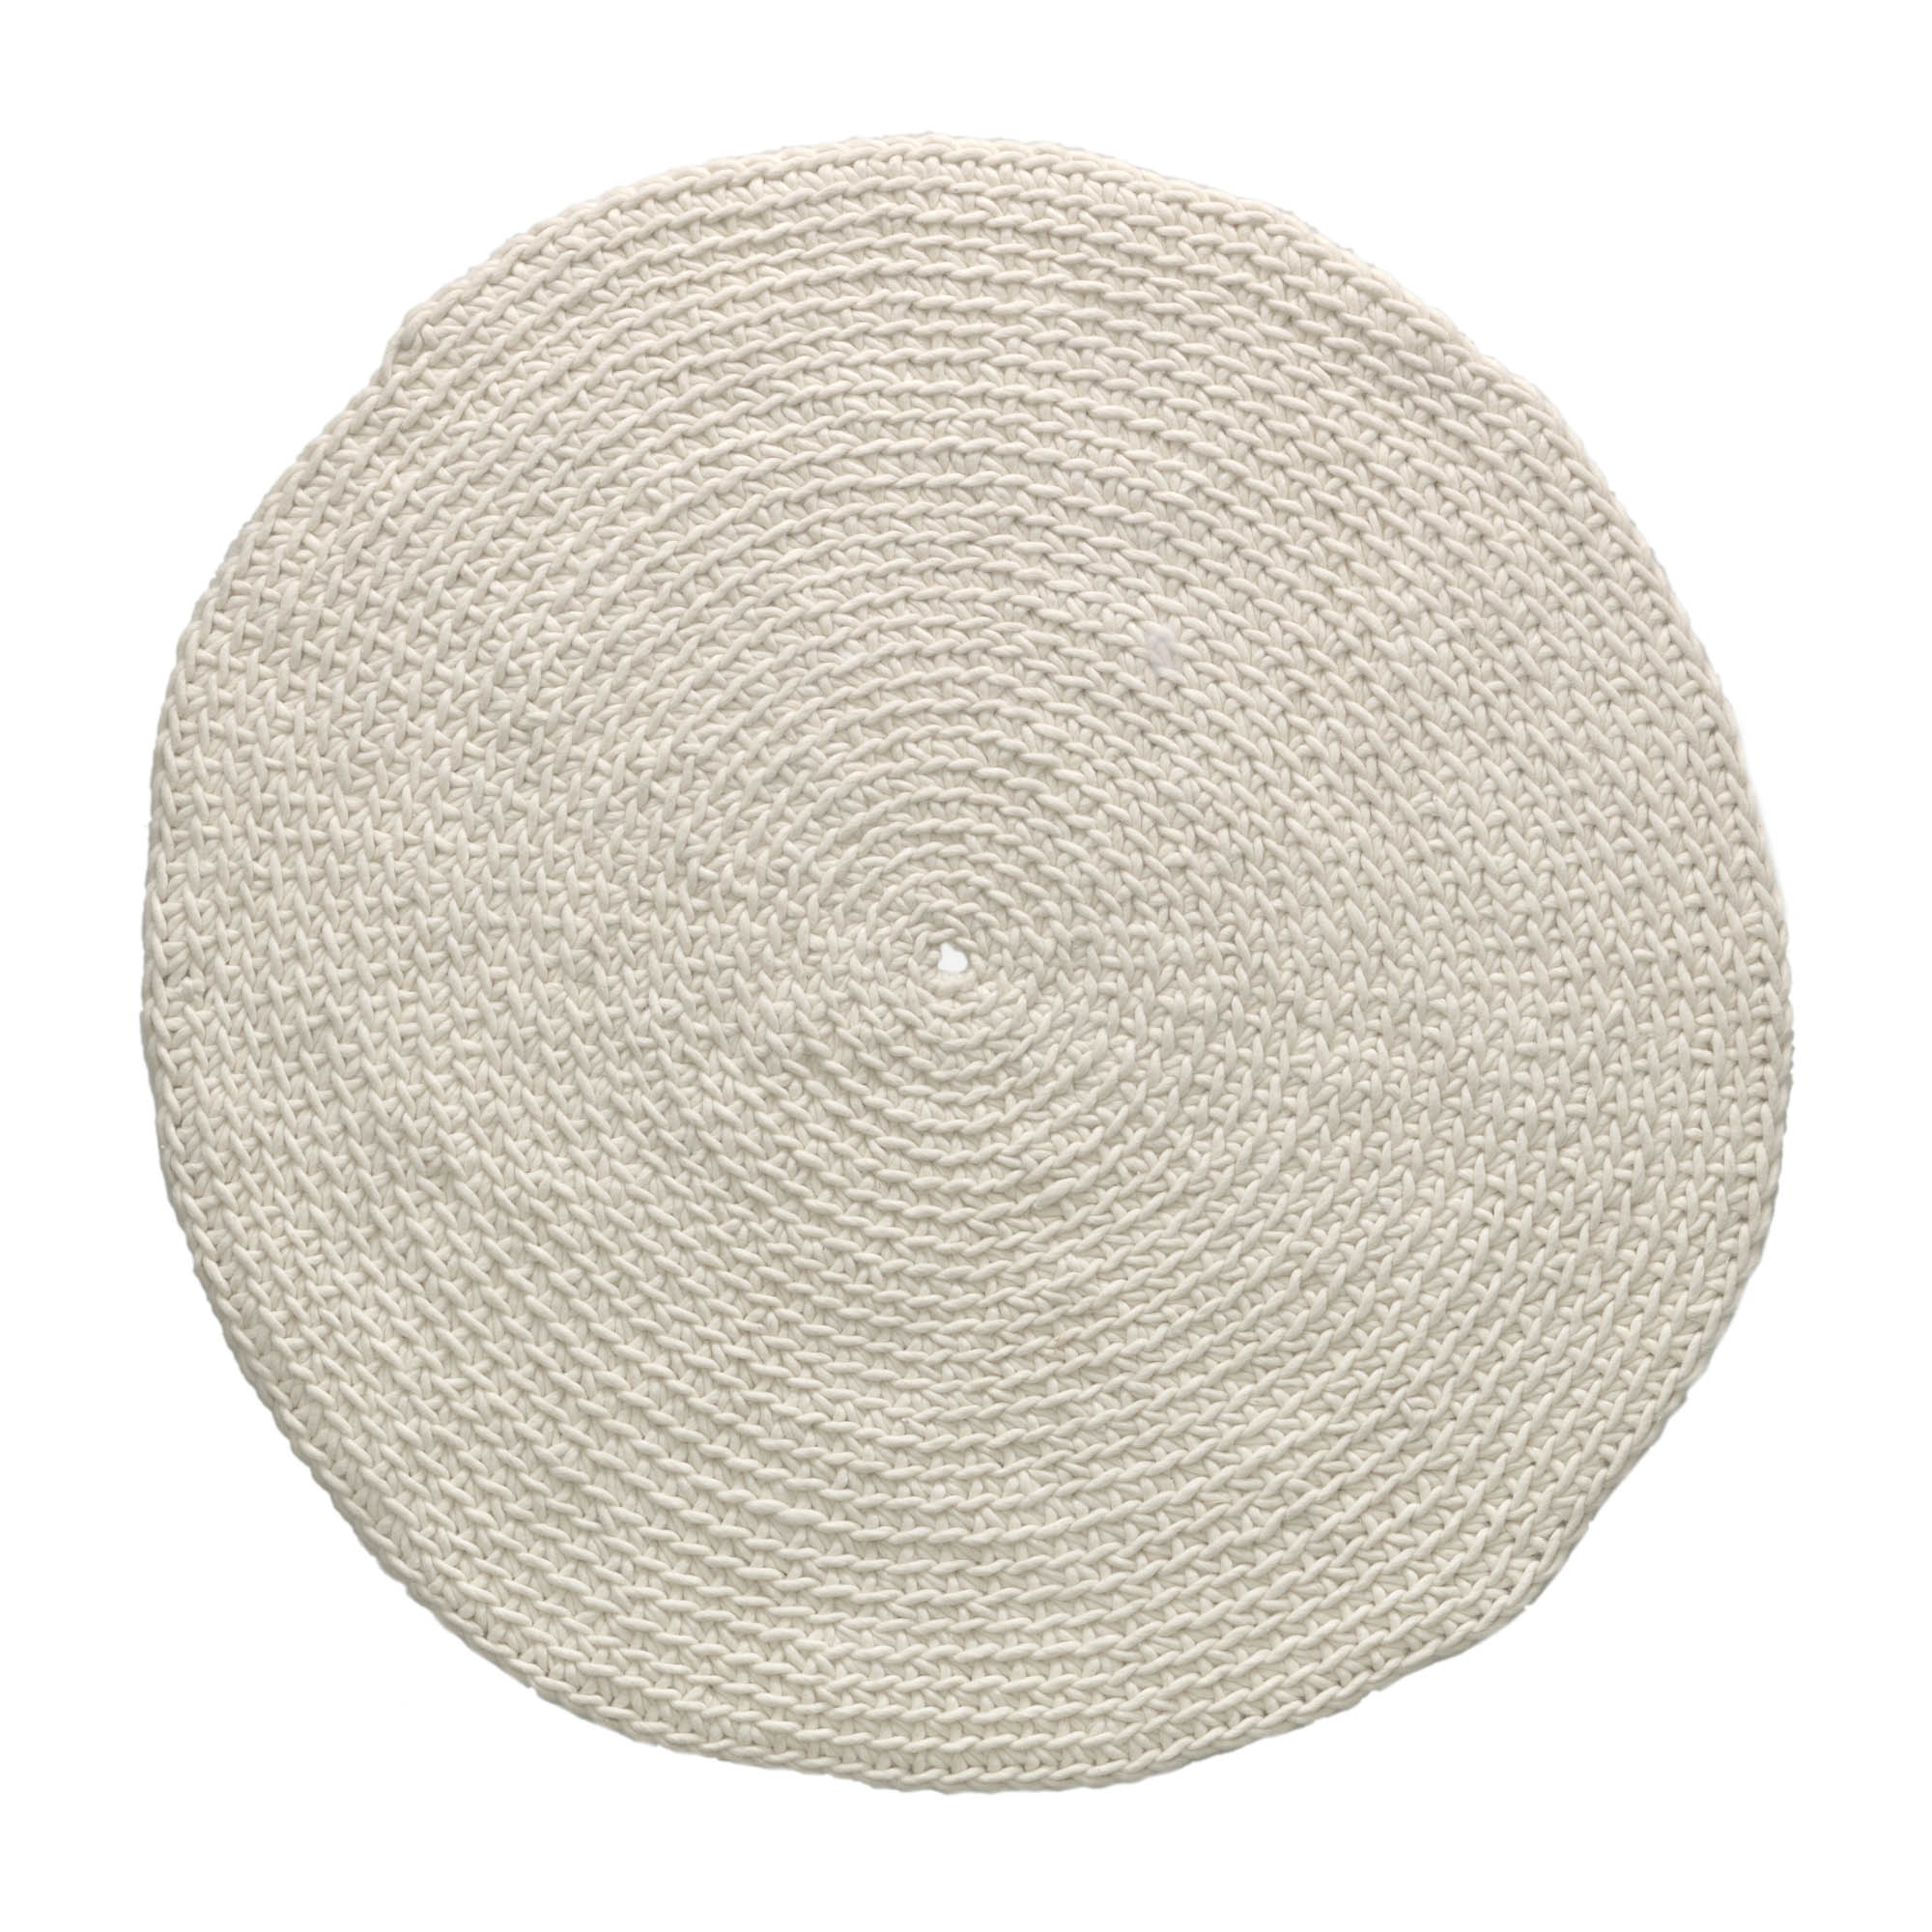 Kave home - tapis puppy Ø 150 cm